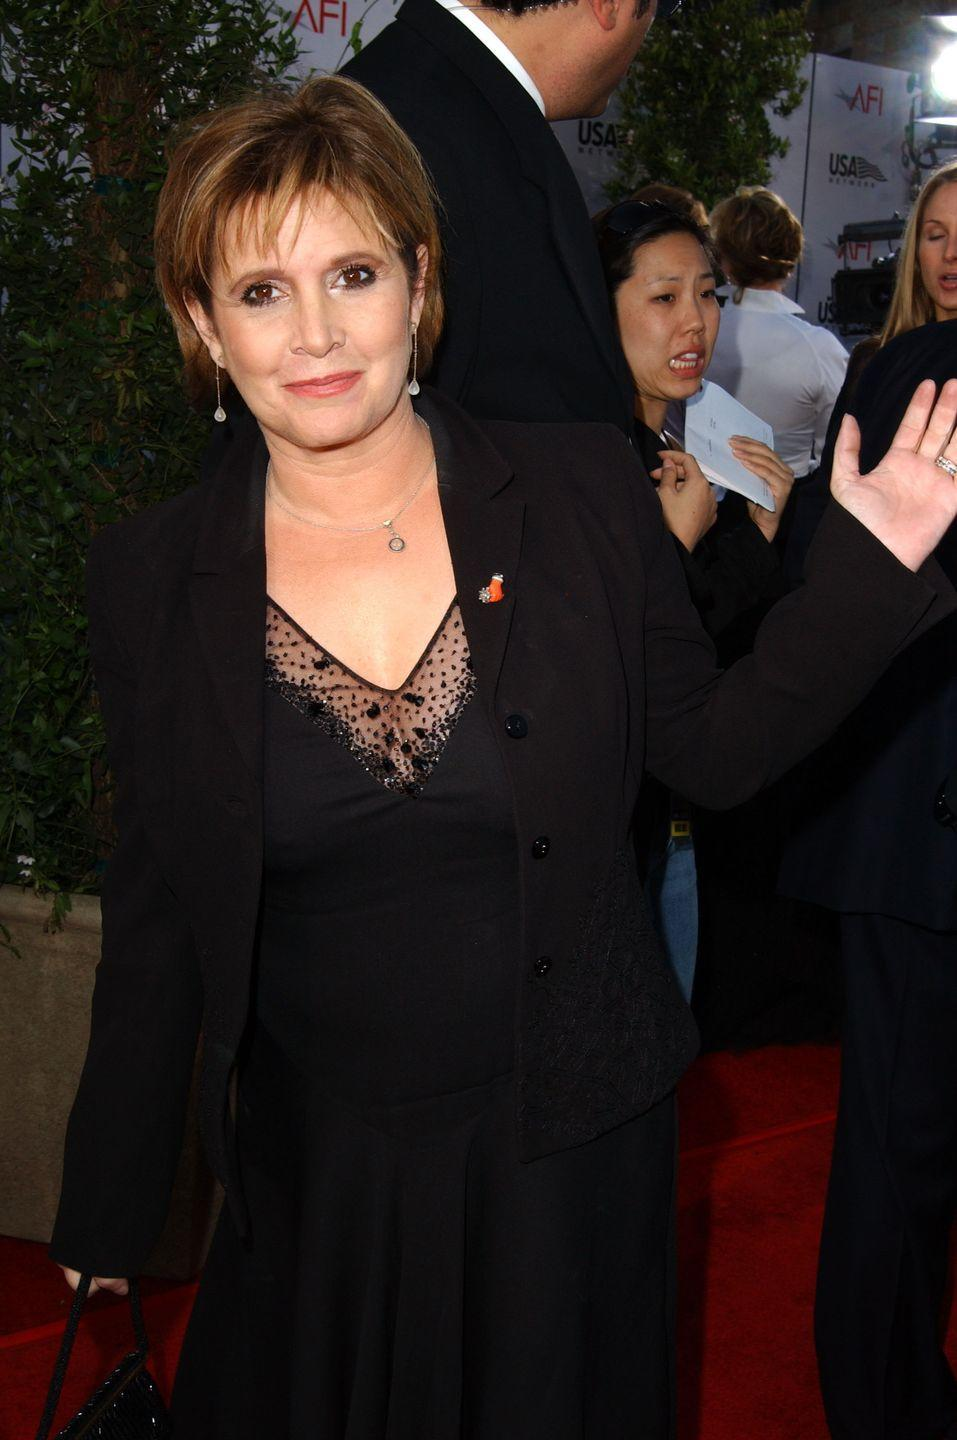 "<p>In 2005, Carrie's impact on the film industry was recognized by Women in Film & Video of Washington DC with the <a href=""https://carriefisher.com/about/"" rel=""nofollow noopener"" target=""_blank"" data-ylk=""slk:Women of Vision Award"" class=""link rapid-noclick-resp"">Women of Vision Award</a>. </p>"